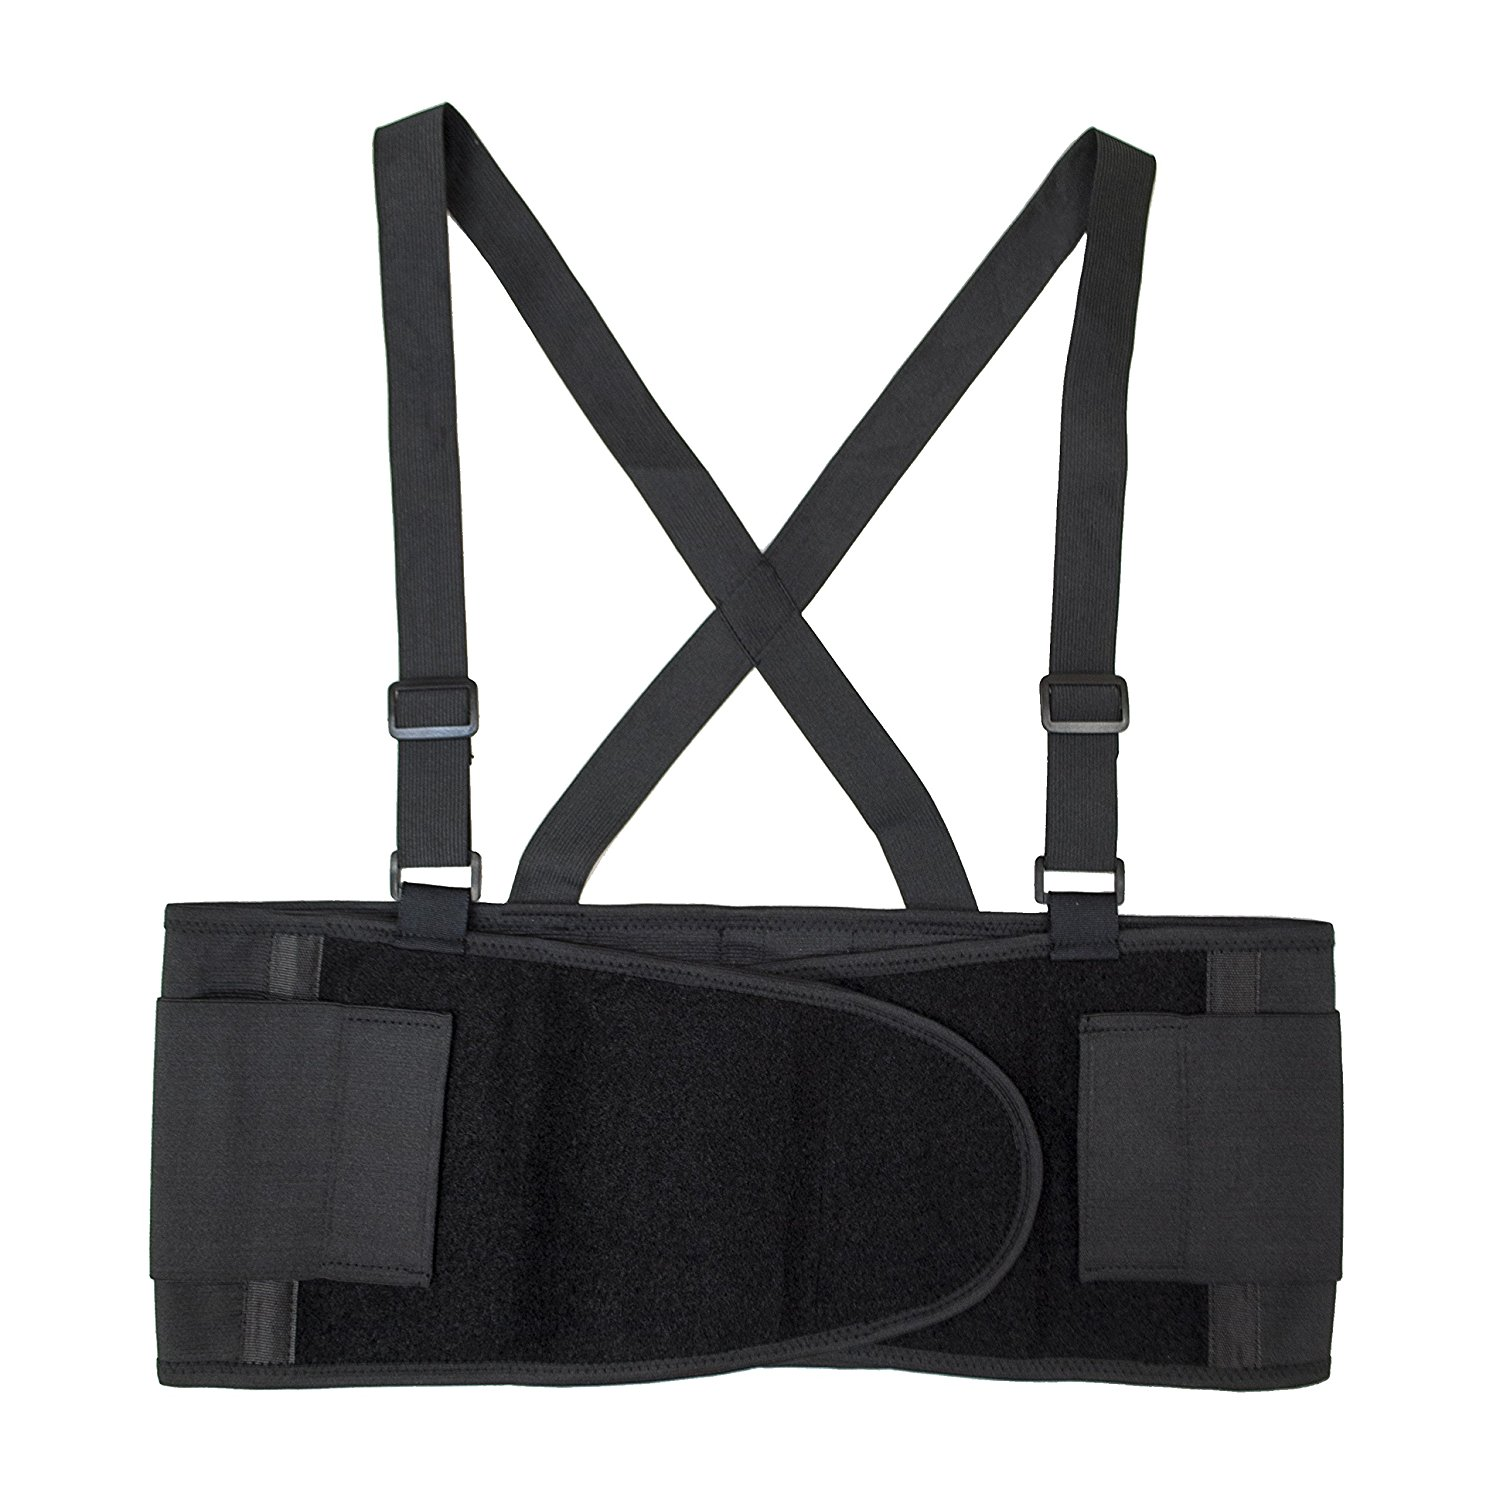 BACK02XL Comfort Lower Back Support